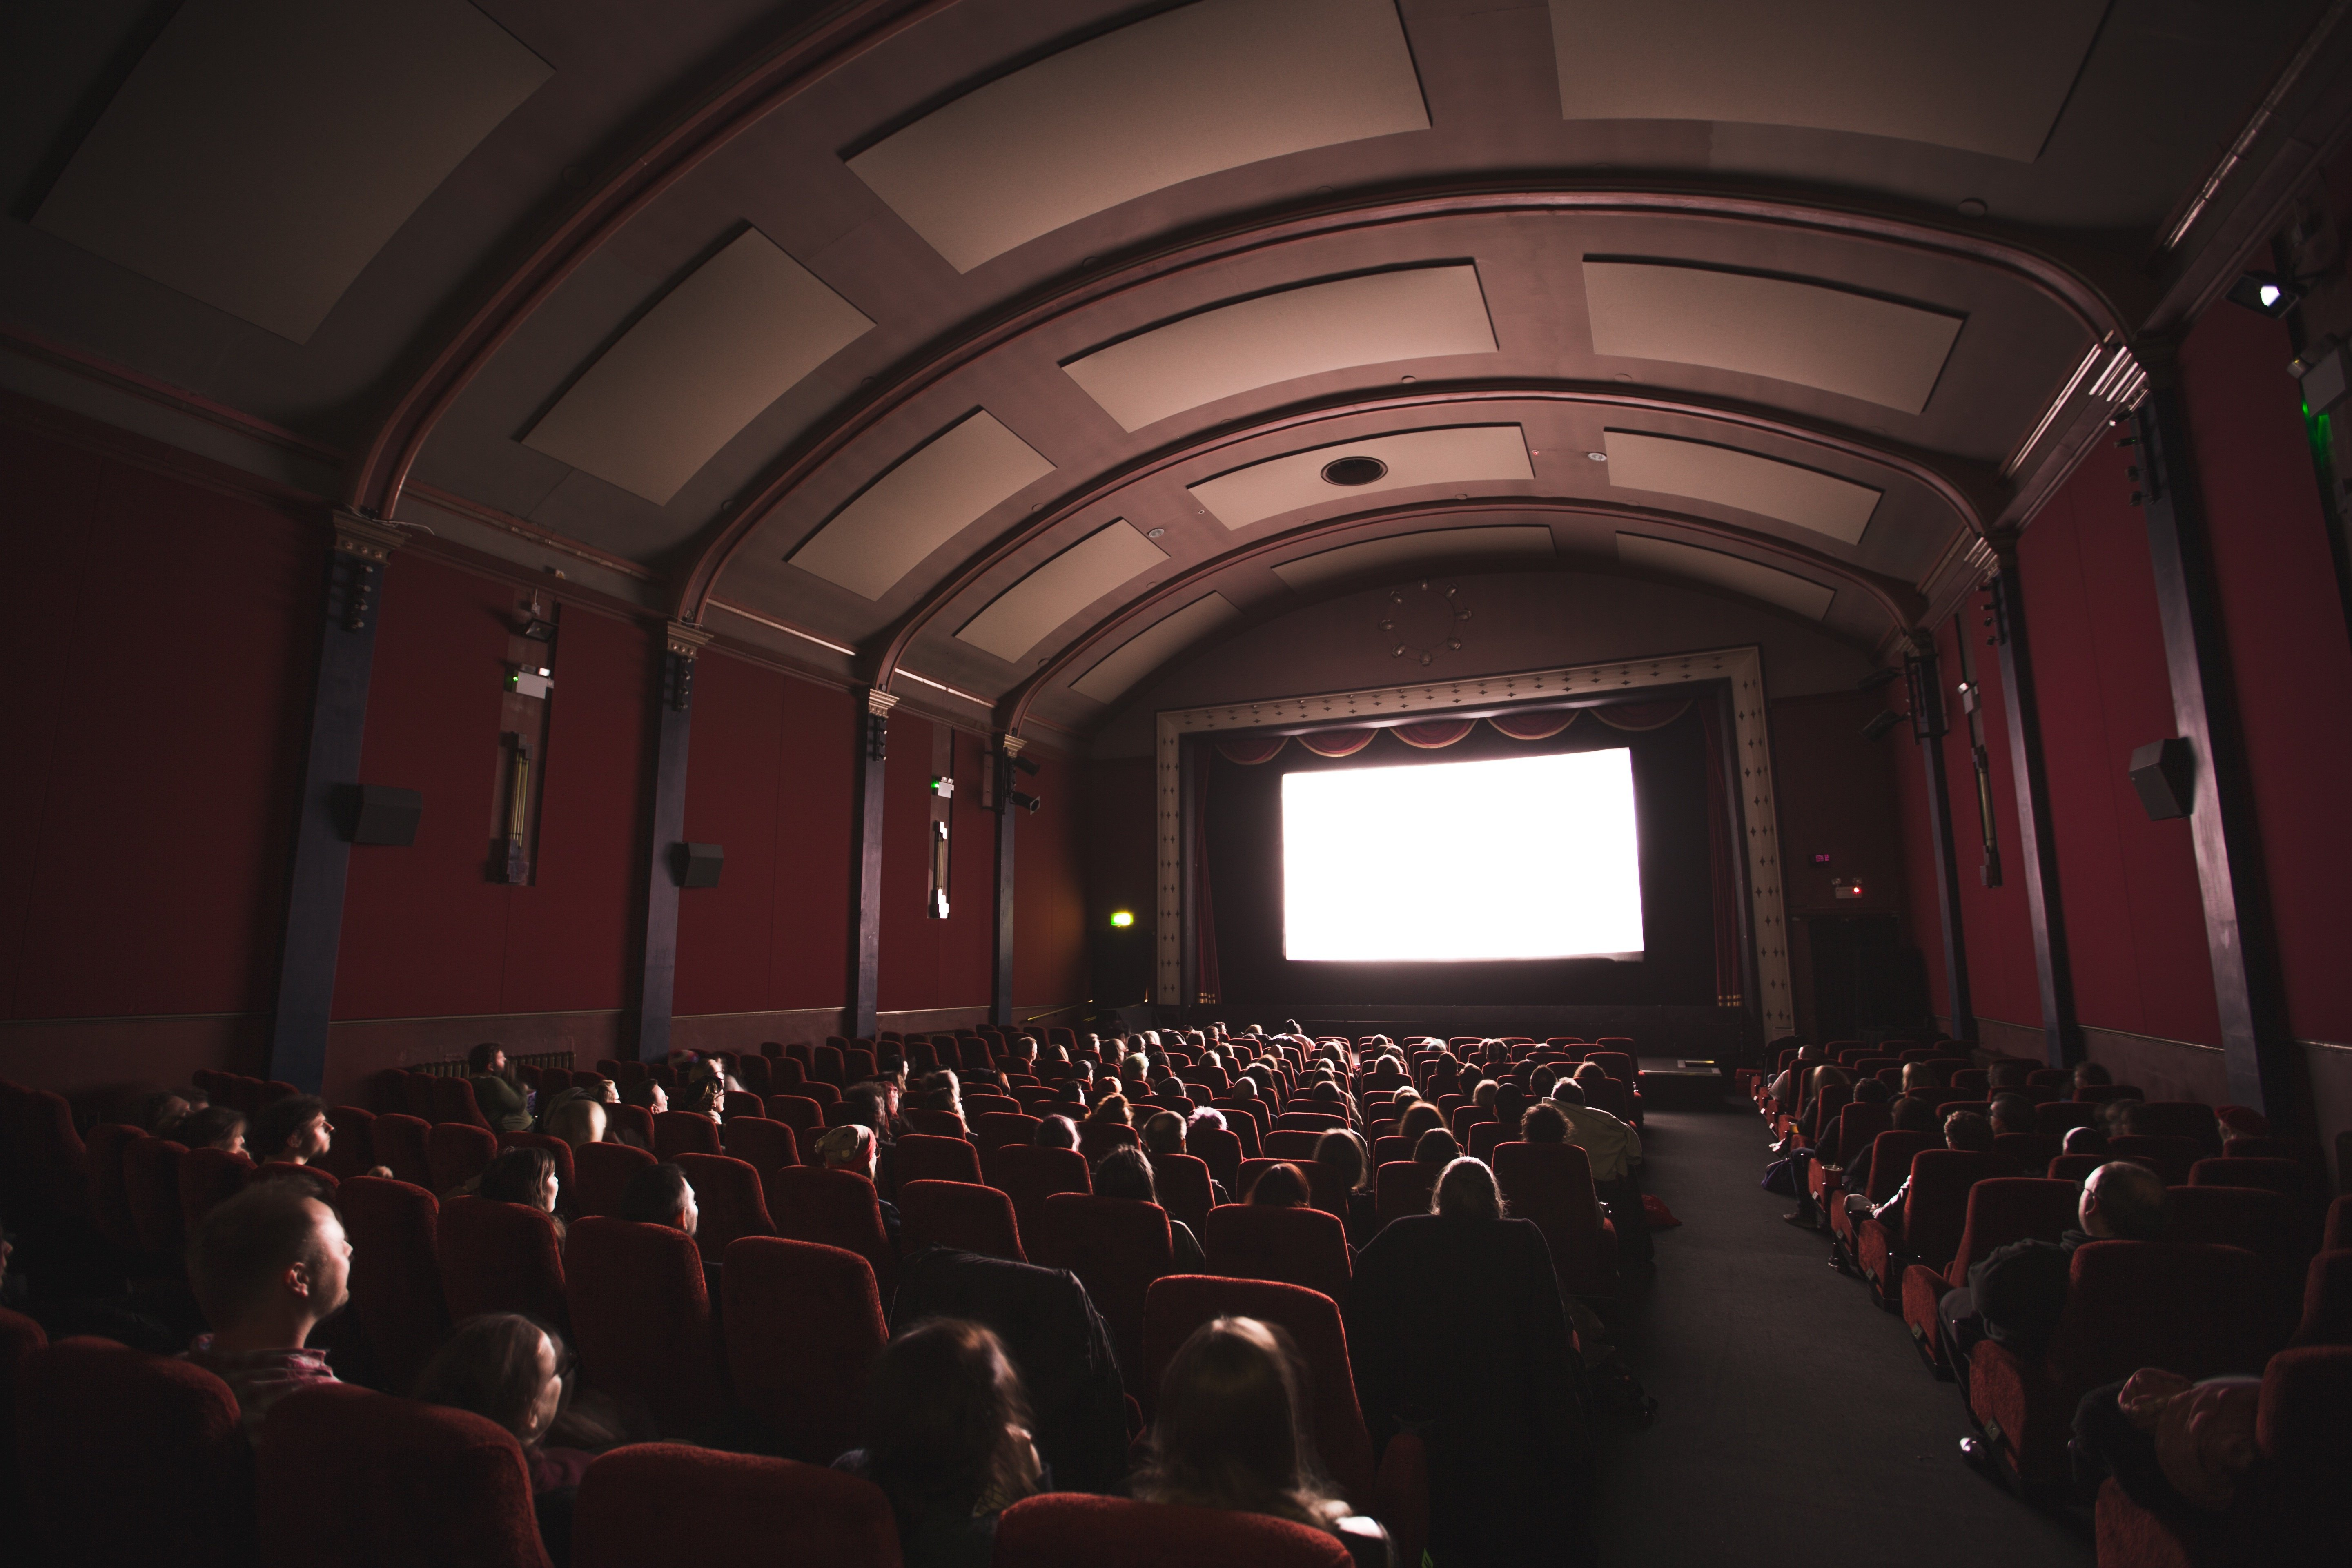 A movie theater full of people